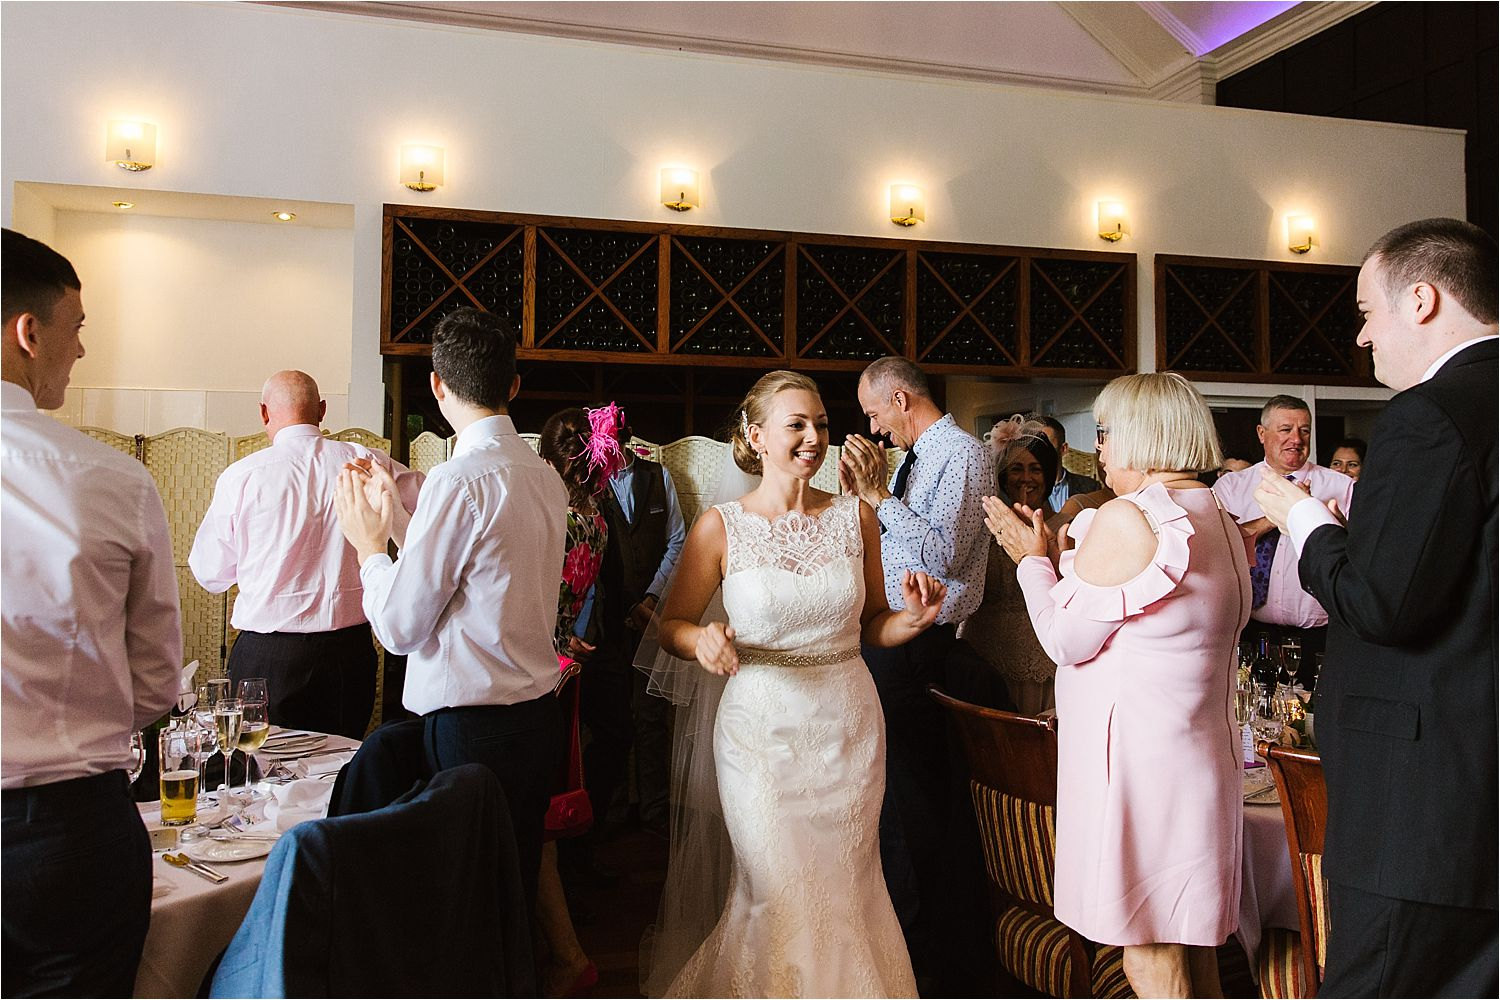 Guests welcome bride and groom into reception at Lake District wedding venue, Low Wood Bay